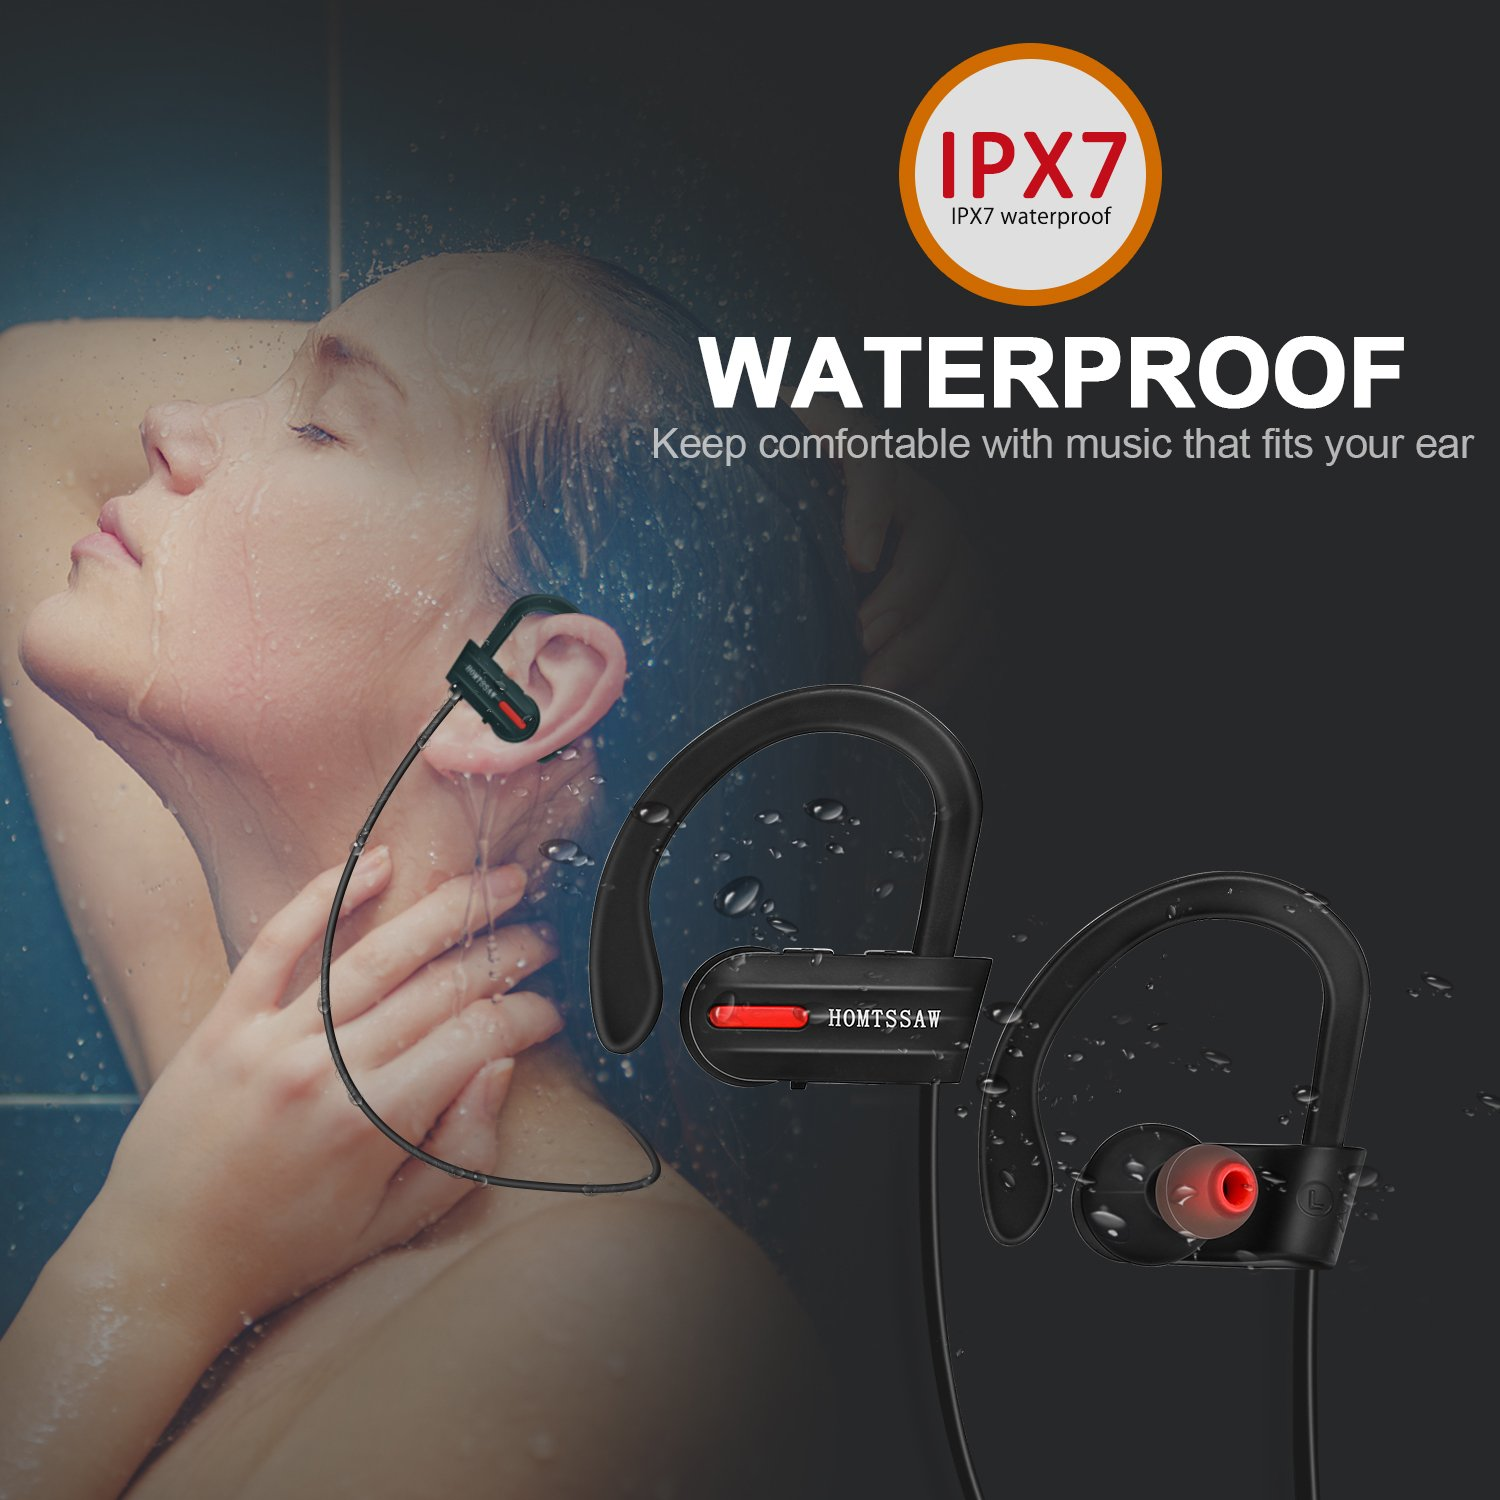 Wireless Bluetooth Headphones In Ear Earbuds-IPX7 Waterproof Sports Cordless 4.1 Earphones with Built in Mic & CVC 6.0 Noise Cancelling Technology for iPhones & Android Smartphones, Black